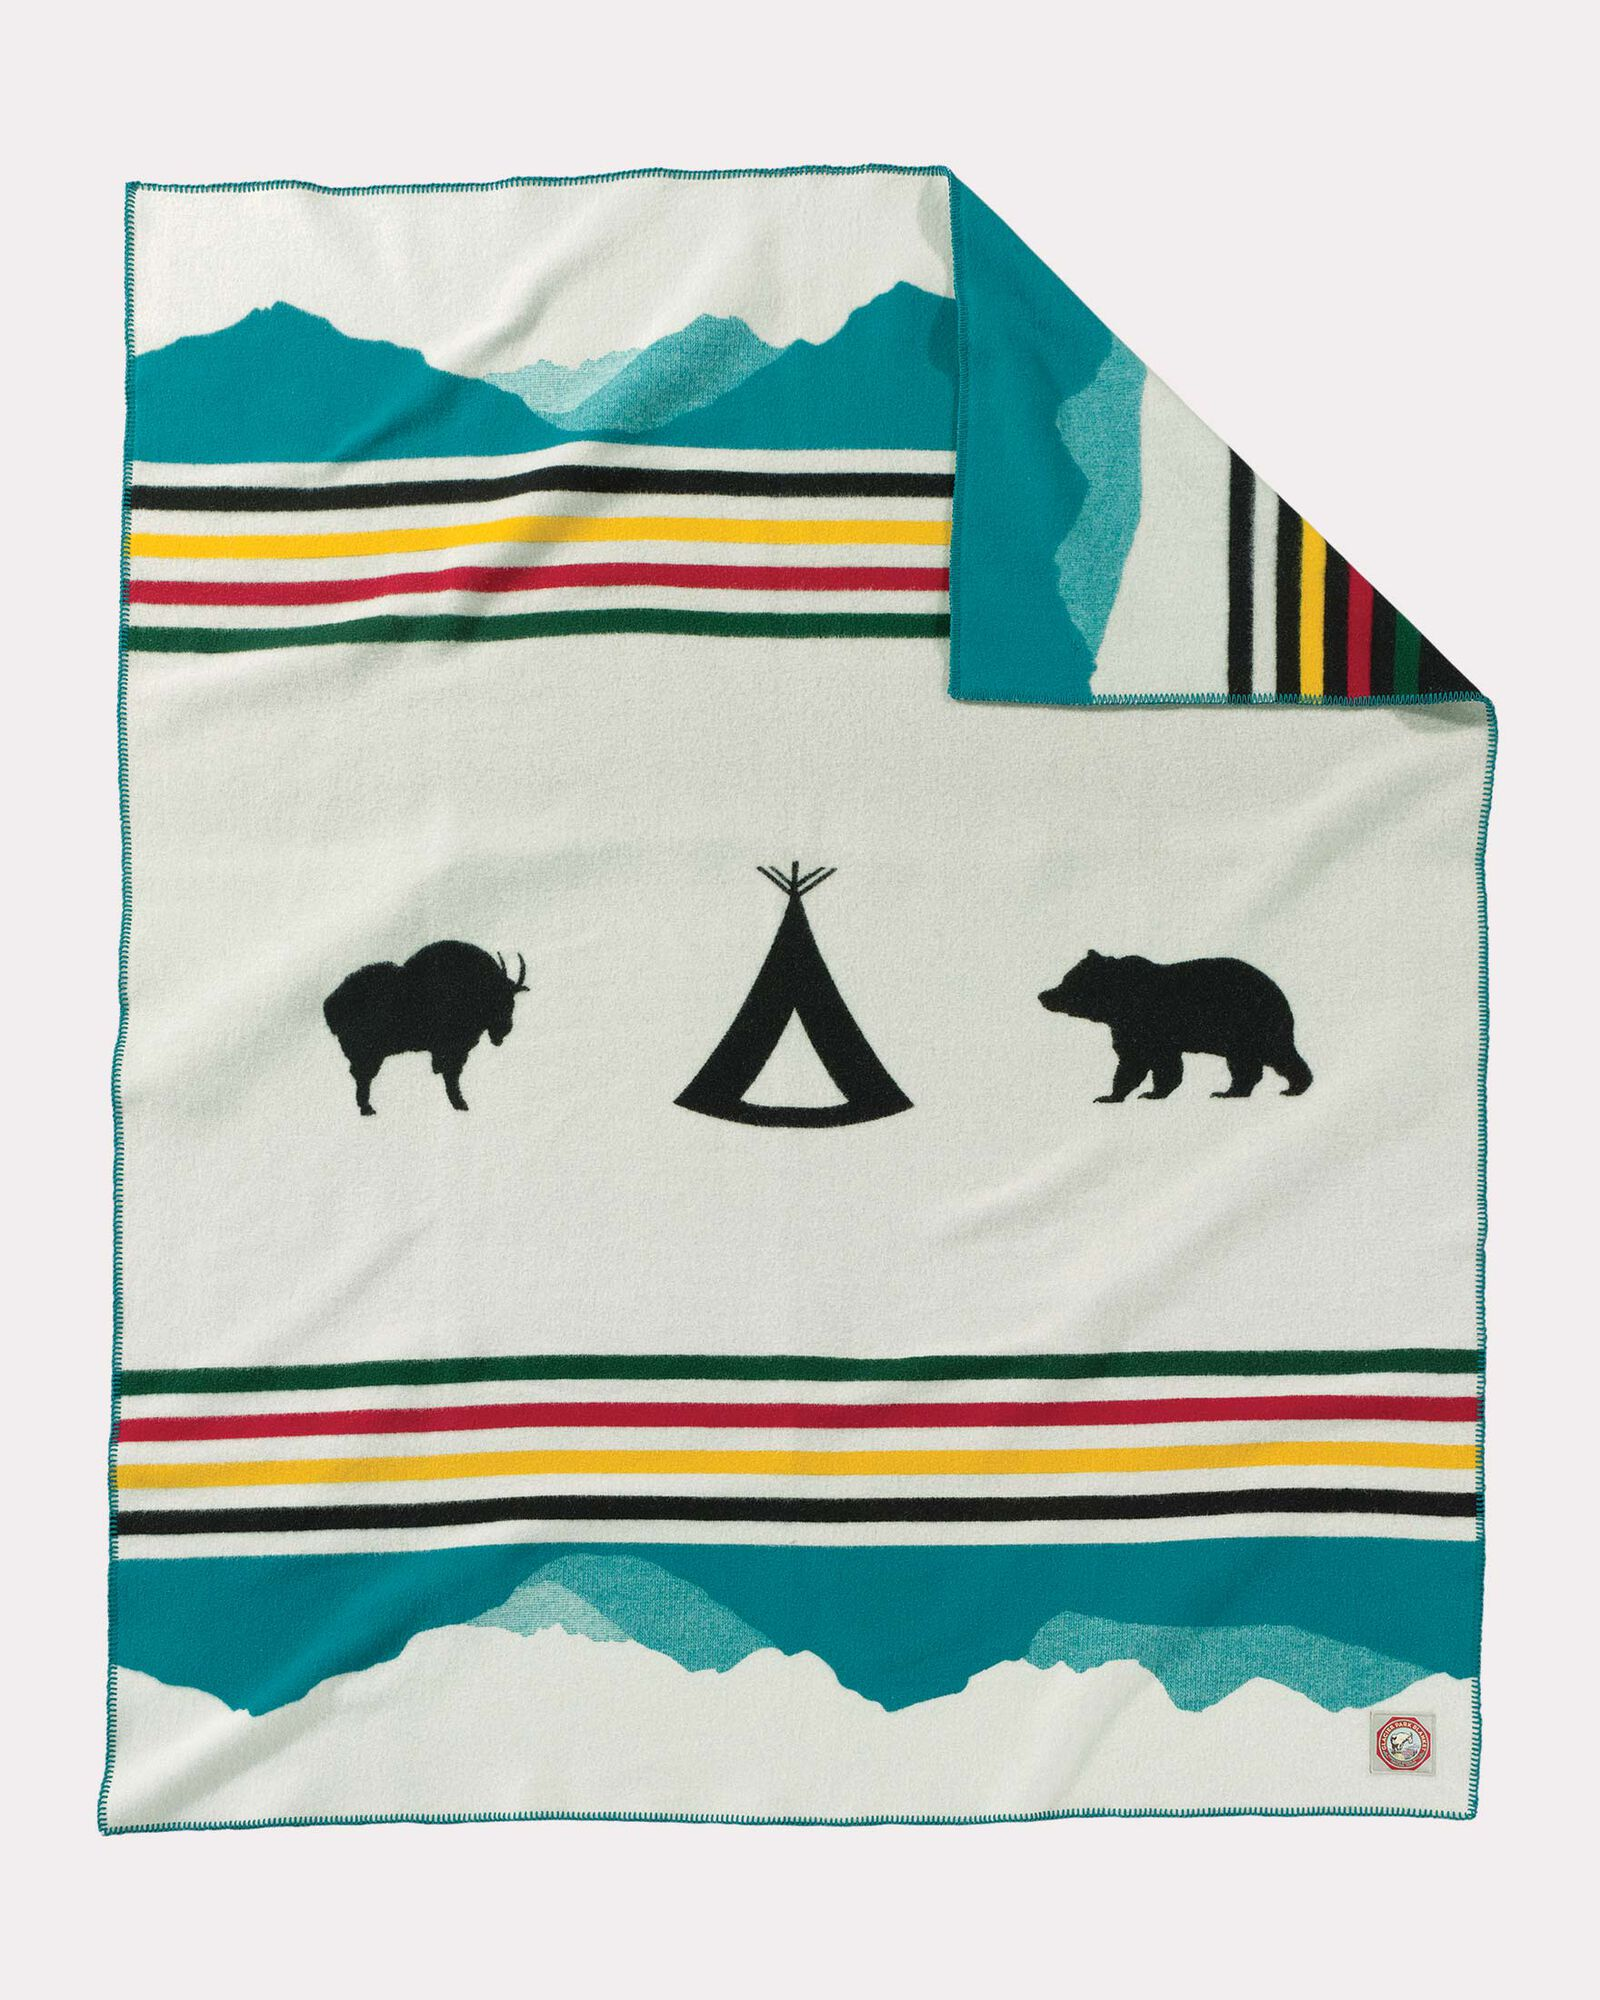 Glacier Park 100th Anniversary Blanket Images